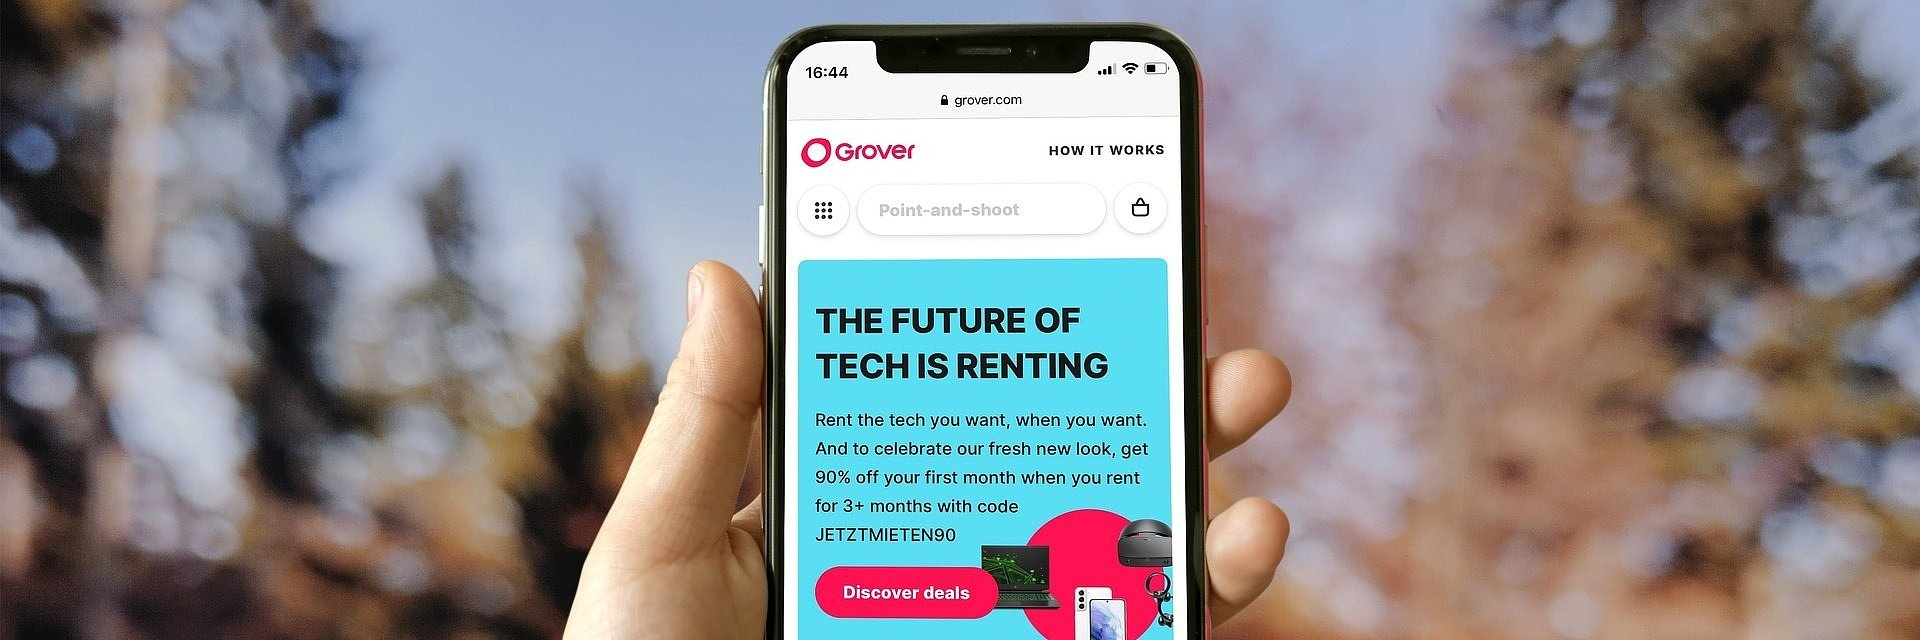 Grover raises €60 million in Series B funding to take consumer tech subscriptions mainstream